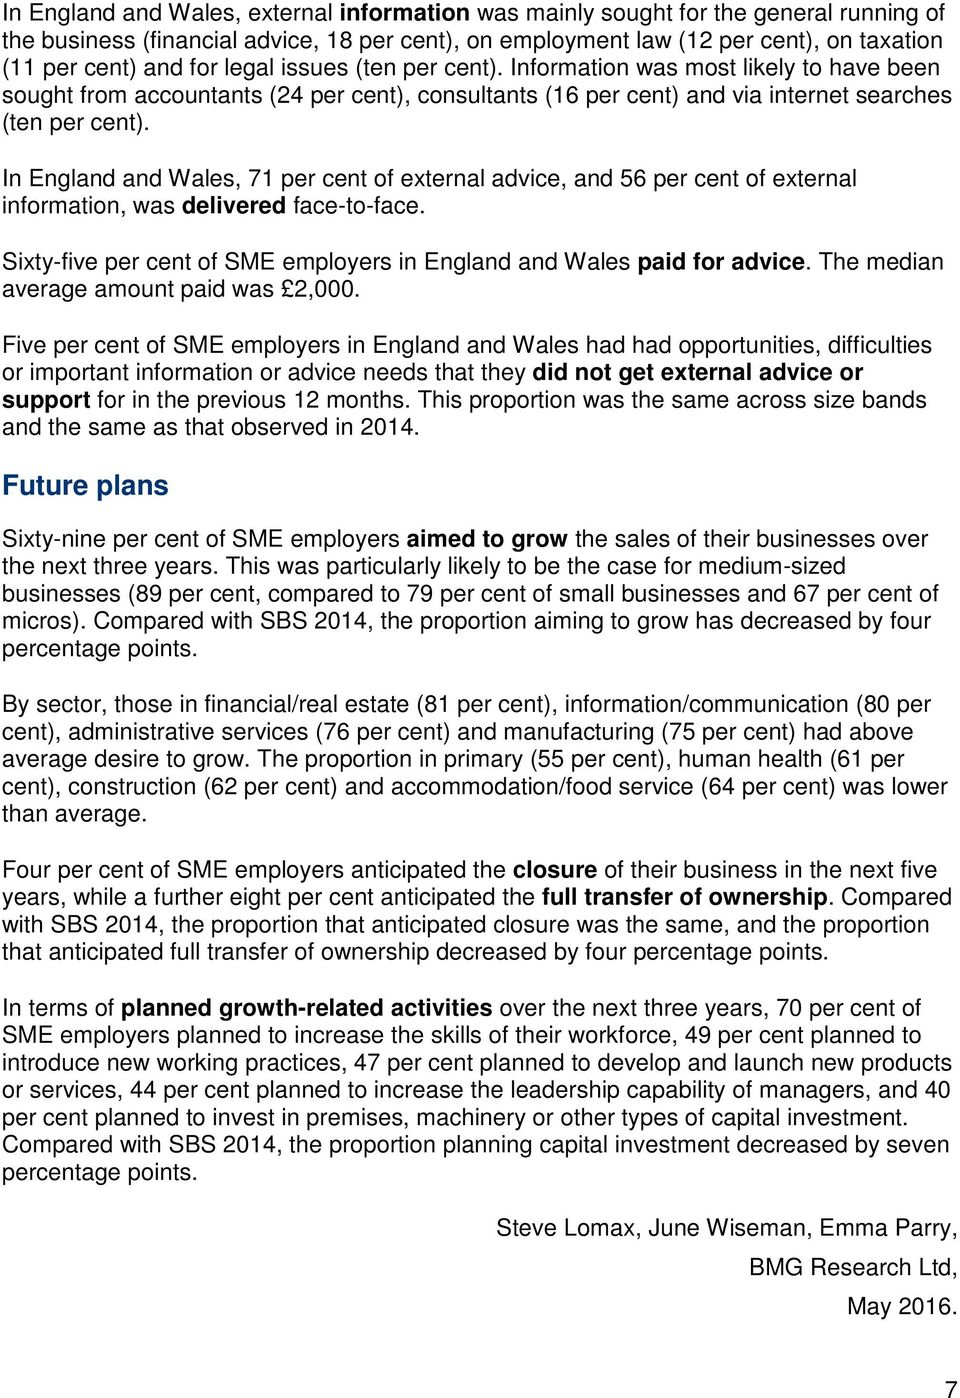 In England and Wales, 71 per cent of external advice, and 56 per cent of external information, was delivered face-to-face. Sixty-five per cent of SME employers in England and Wales paid for advice.